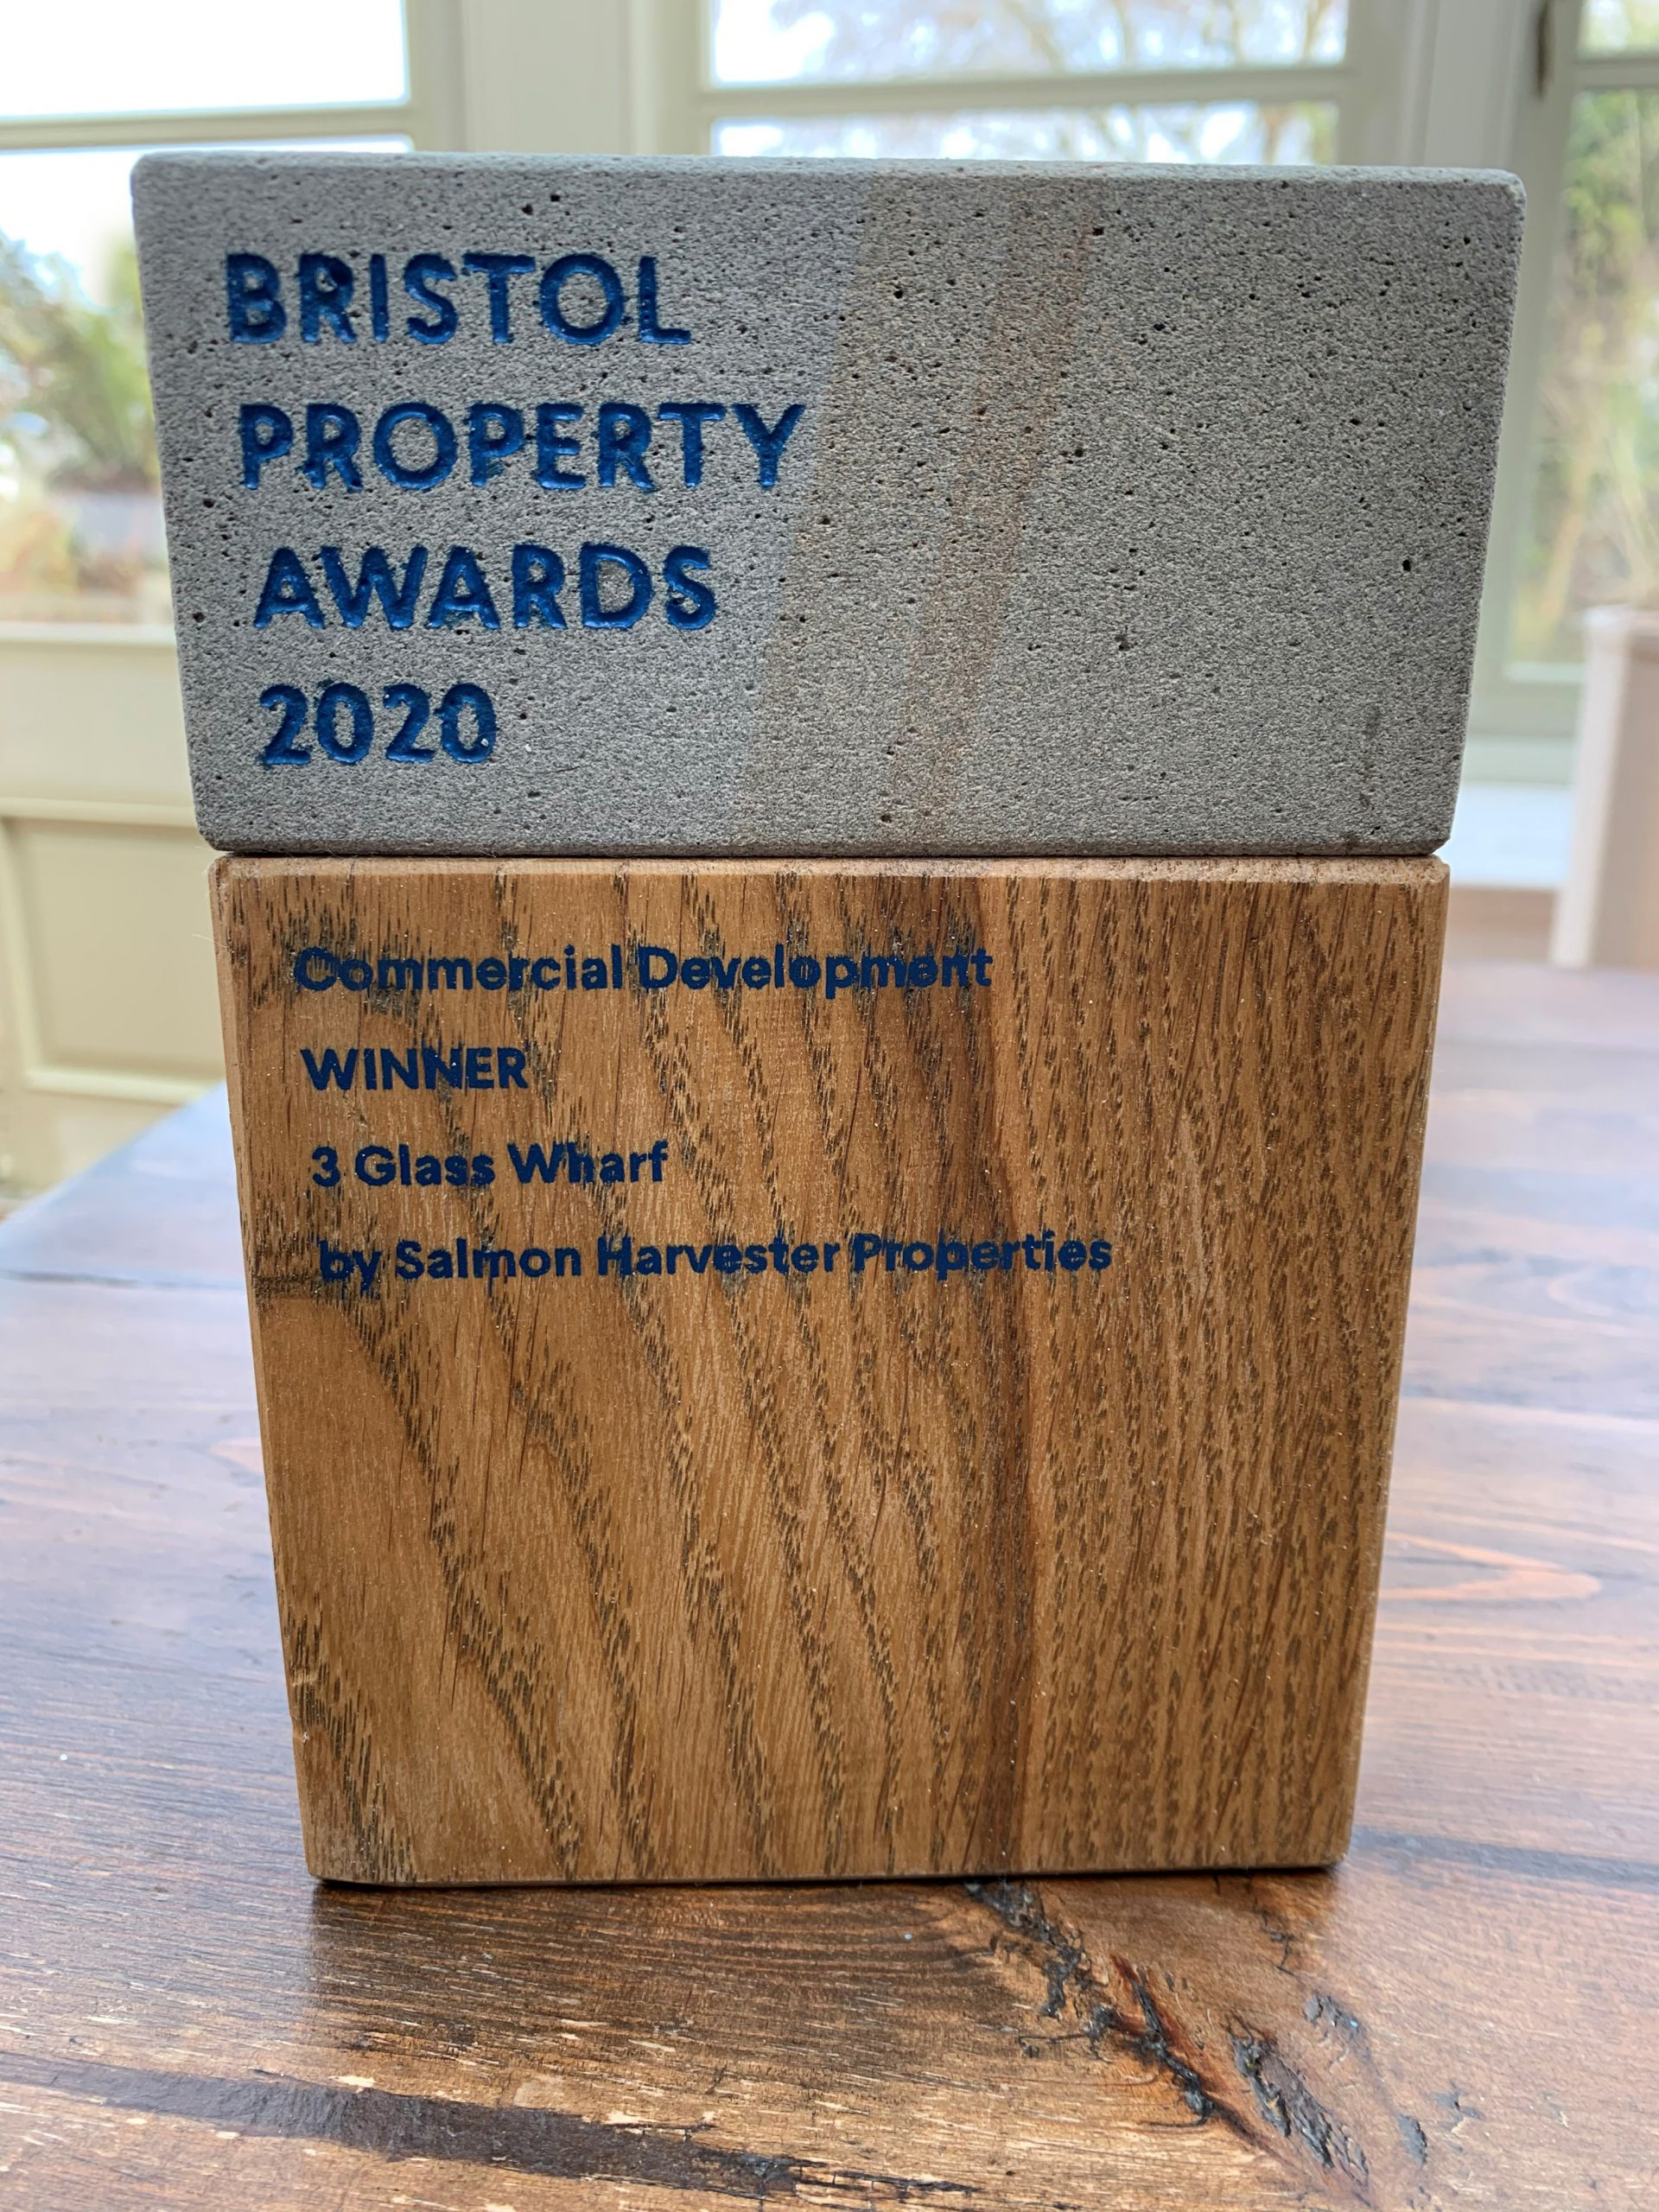 Bristol Property Awards, Best Commercial Development, 3 Glass Wharf